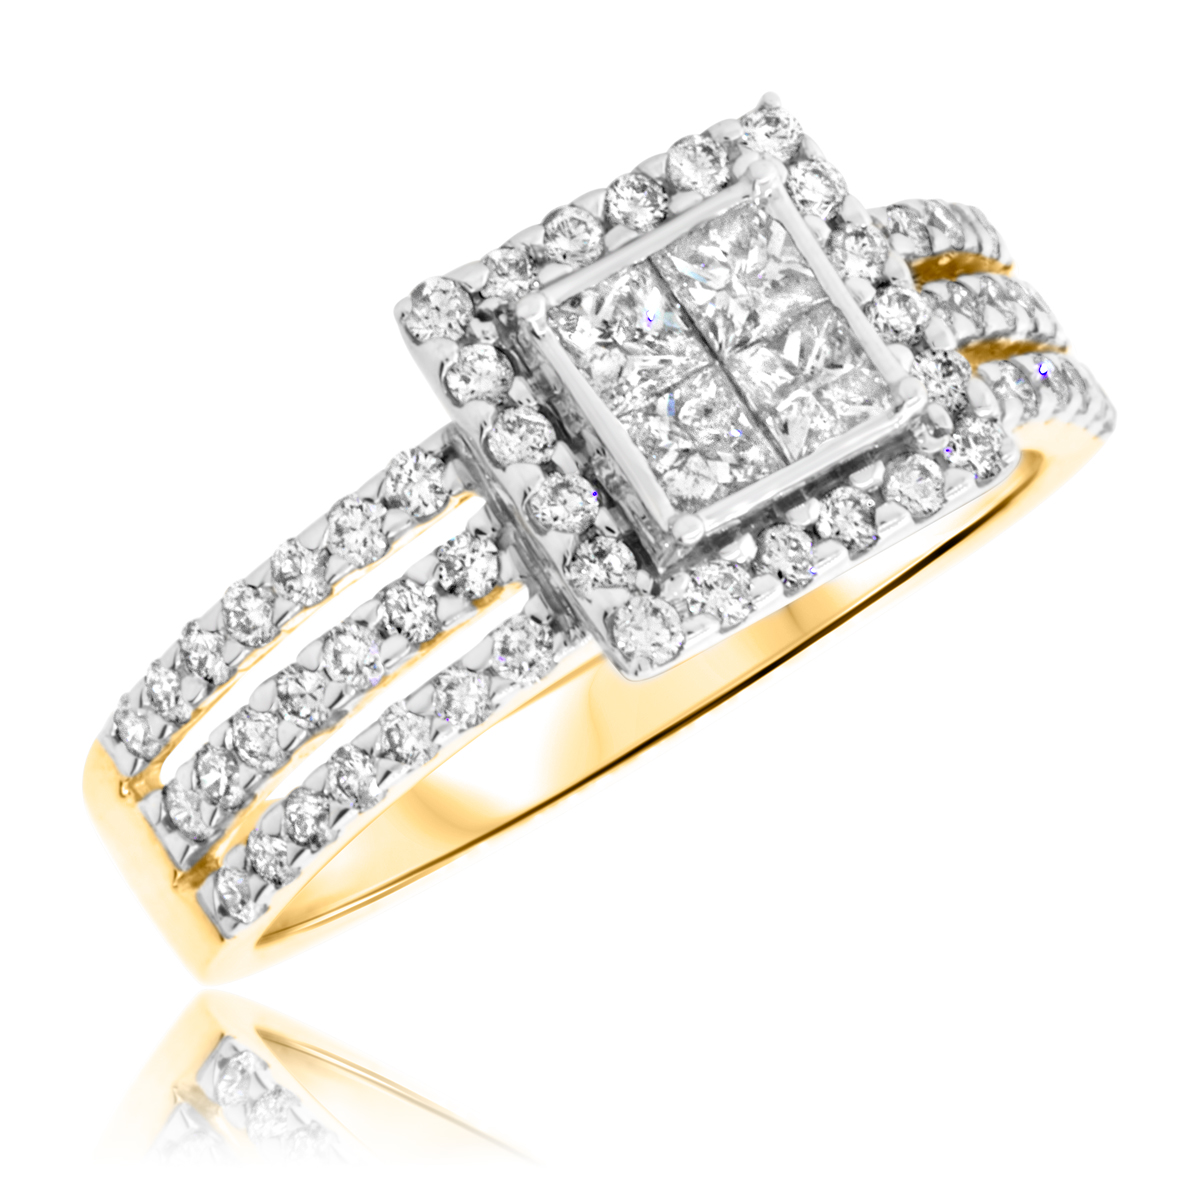 1 Carat T.W. Princess, Round Cut Diamond Ladies Engagement Ring 14K Yellow Gold